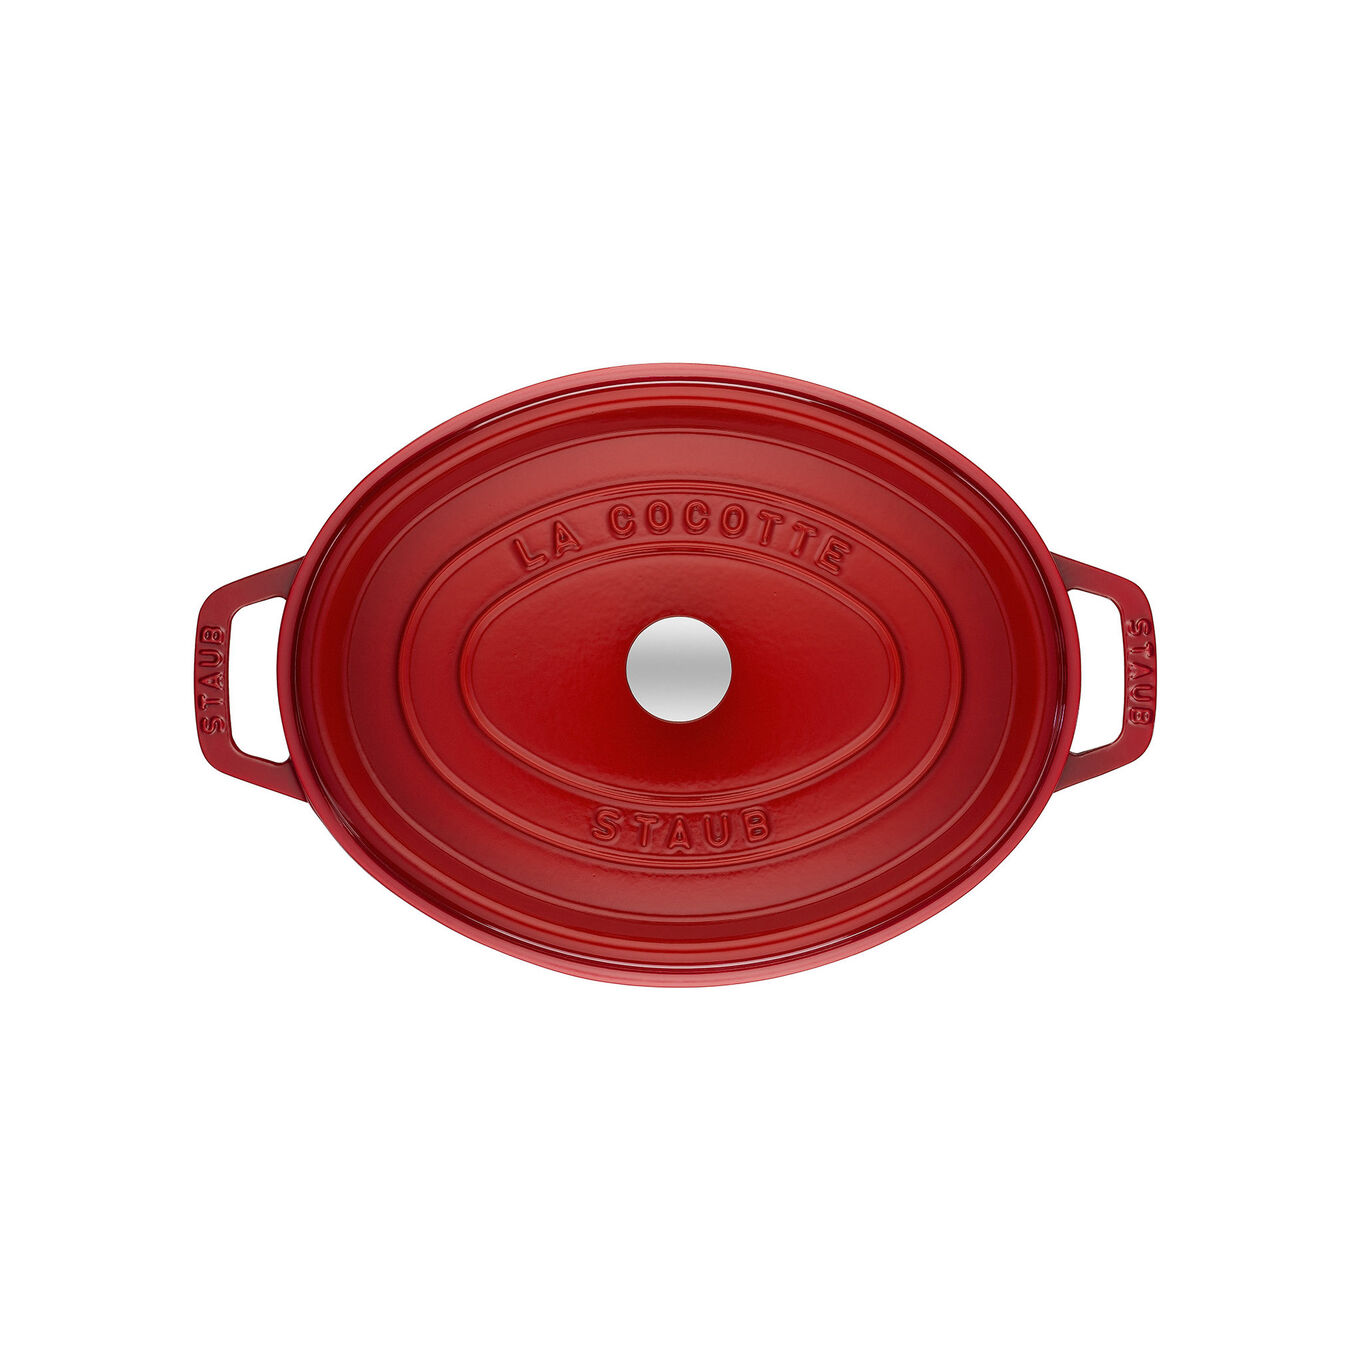 Cocotte 23 cm, oval, Kirsch-Rot, Gusseisen,,large 2